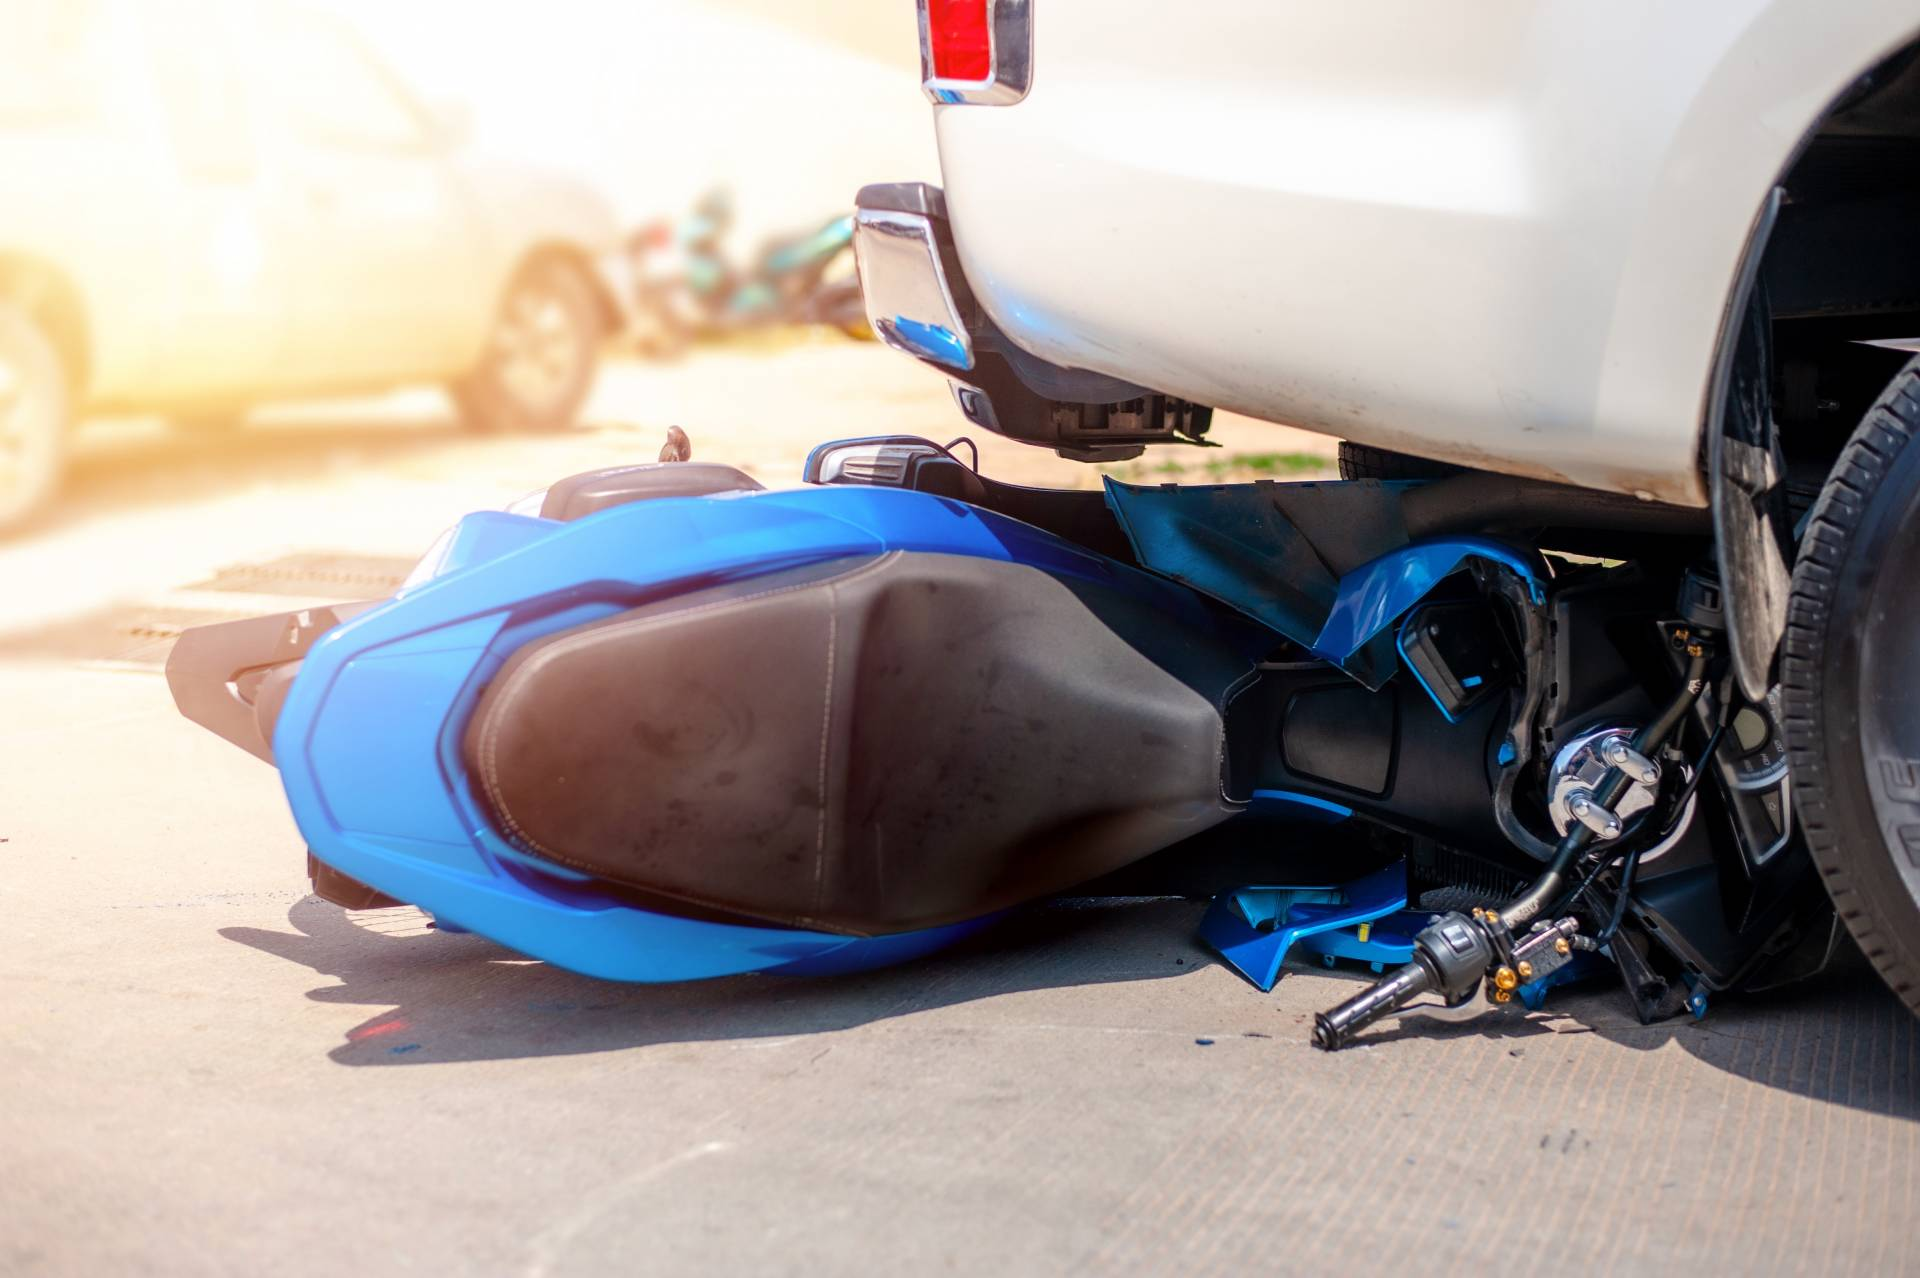 Need an Atlanta motorcycle accident attorney. Contact us today for a free consultation!